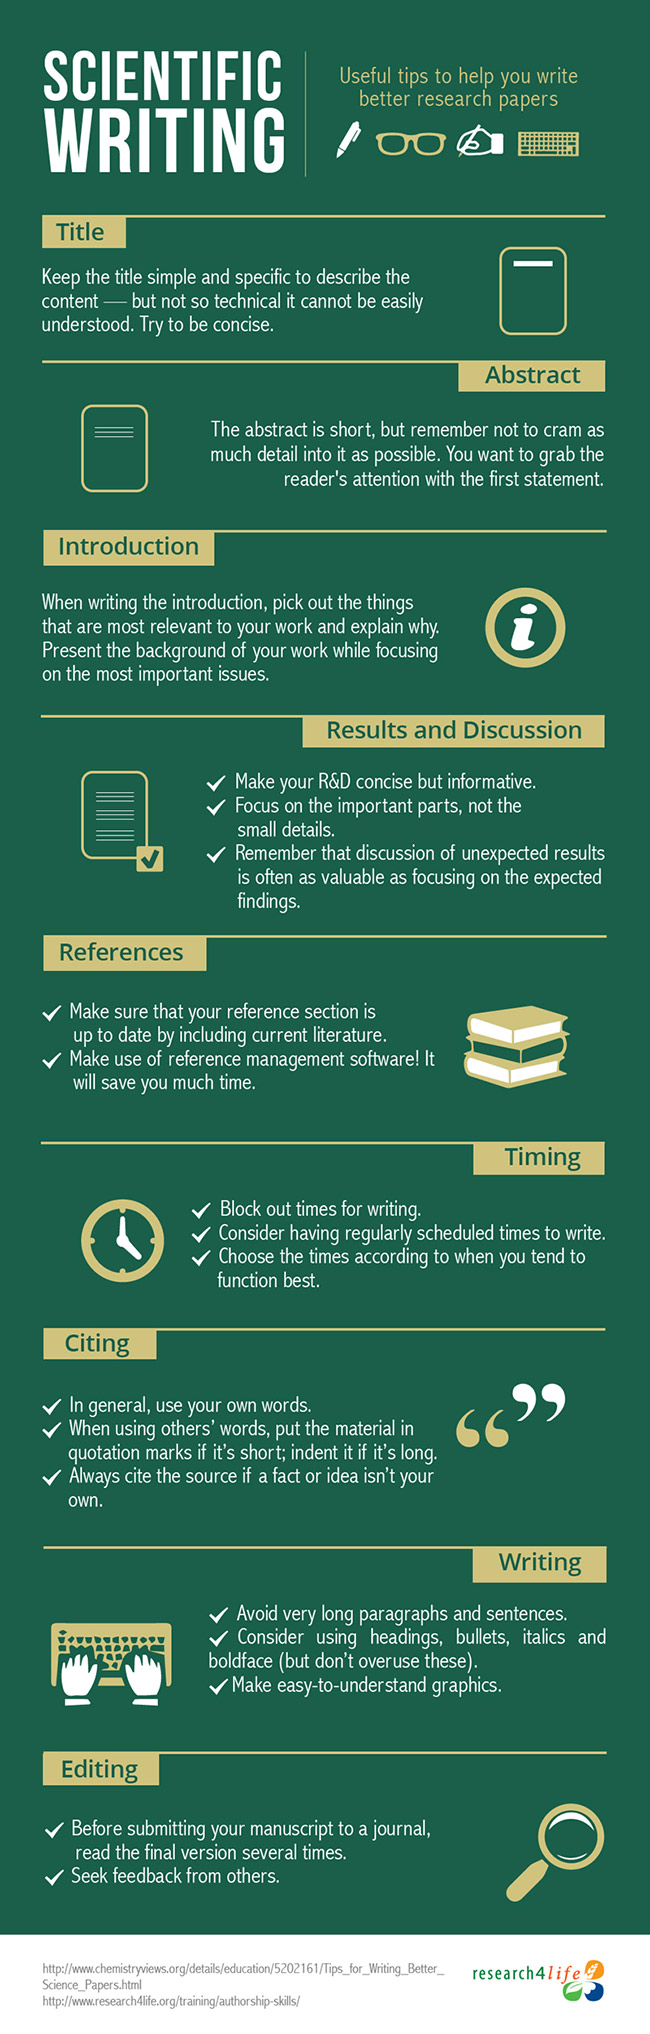 The Worst Day In My Life Essay  Search Essay Topics also Different Topics Of Essays Infographic How To Write Better Science Papers What To Write A Narrative Essay About